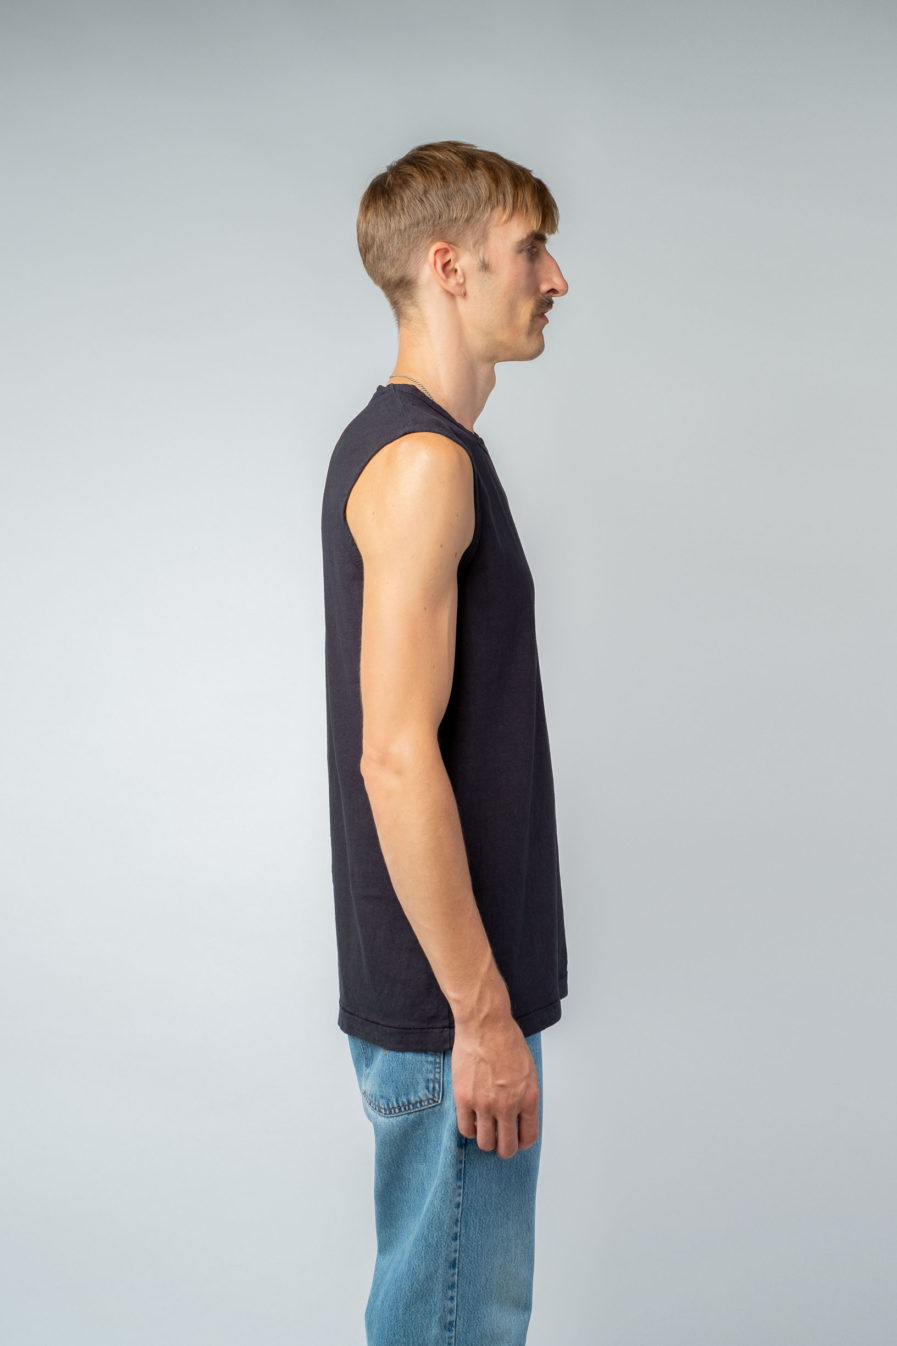 MAN unisex singlet tanktop hemp organic cotton VALENTIJN Carbon black side